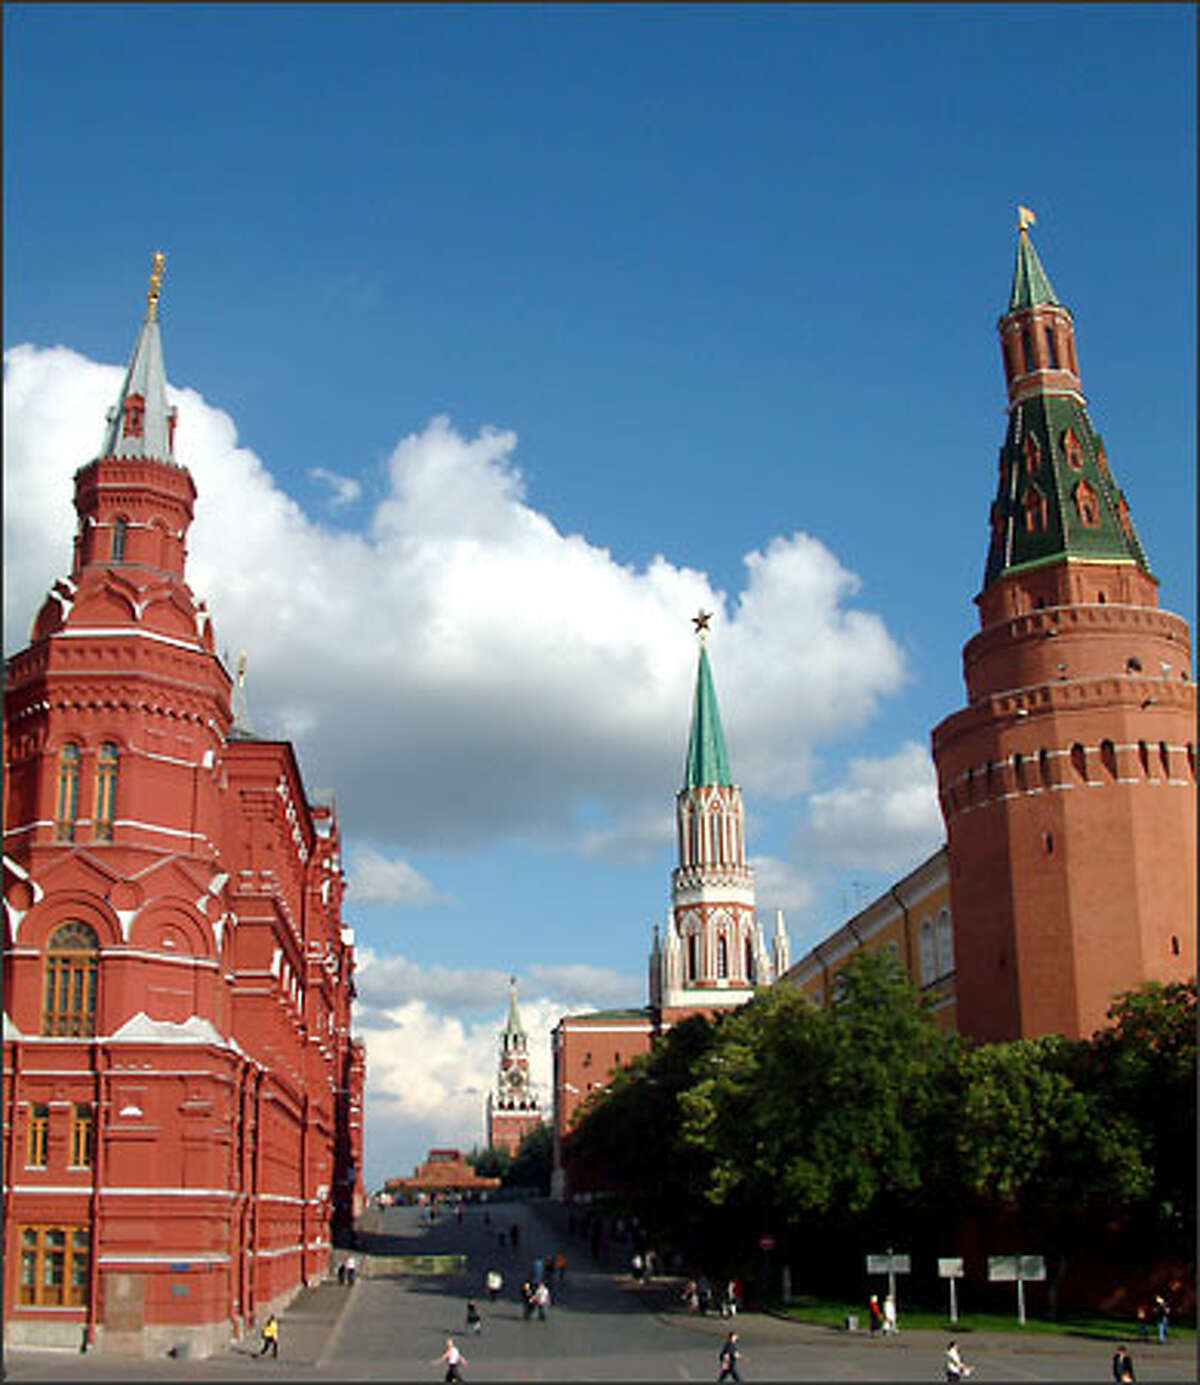 The walls of the Kremlin (right) and the State History Museum (left) give Moscow a rather striking center. The fortified Kremlin is the long-standing center of Russian power. The first walls were erected in the 1100s and were wooden at the time. Today 1½ miles of towering walls surround this historical place. But you don't need an invading army to get inside, only a tourist ticket.